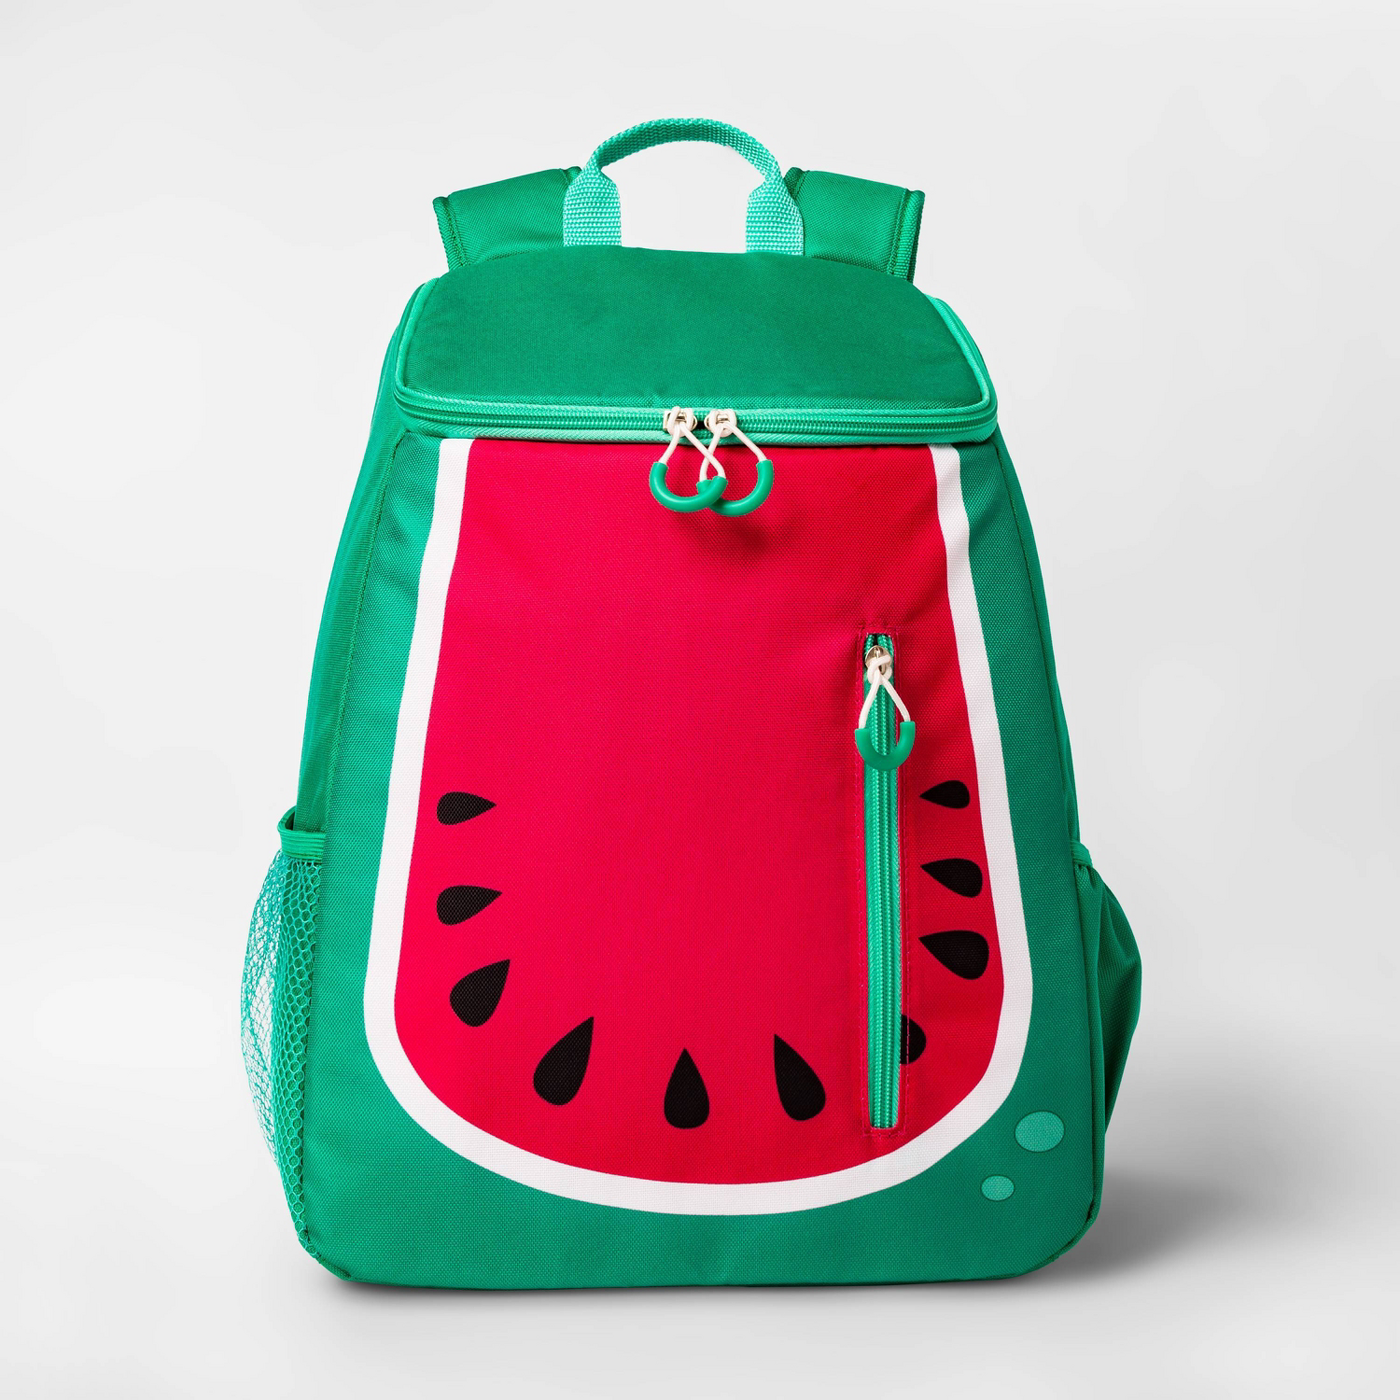 20 Can Watermelon Backpack Cooler - Sun Squad